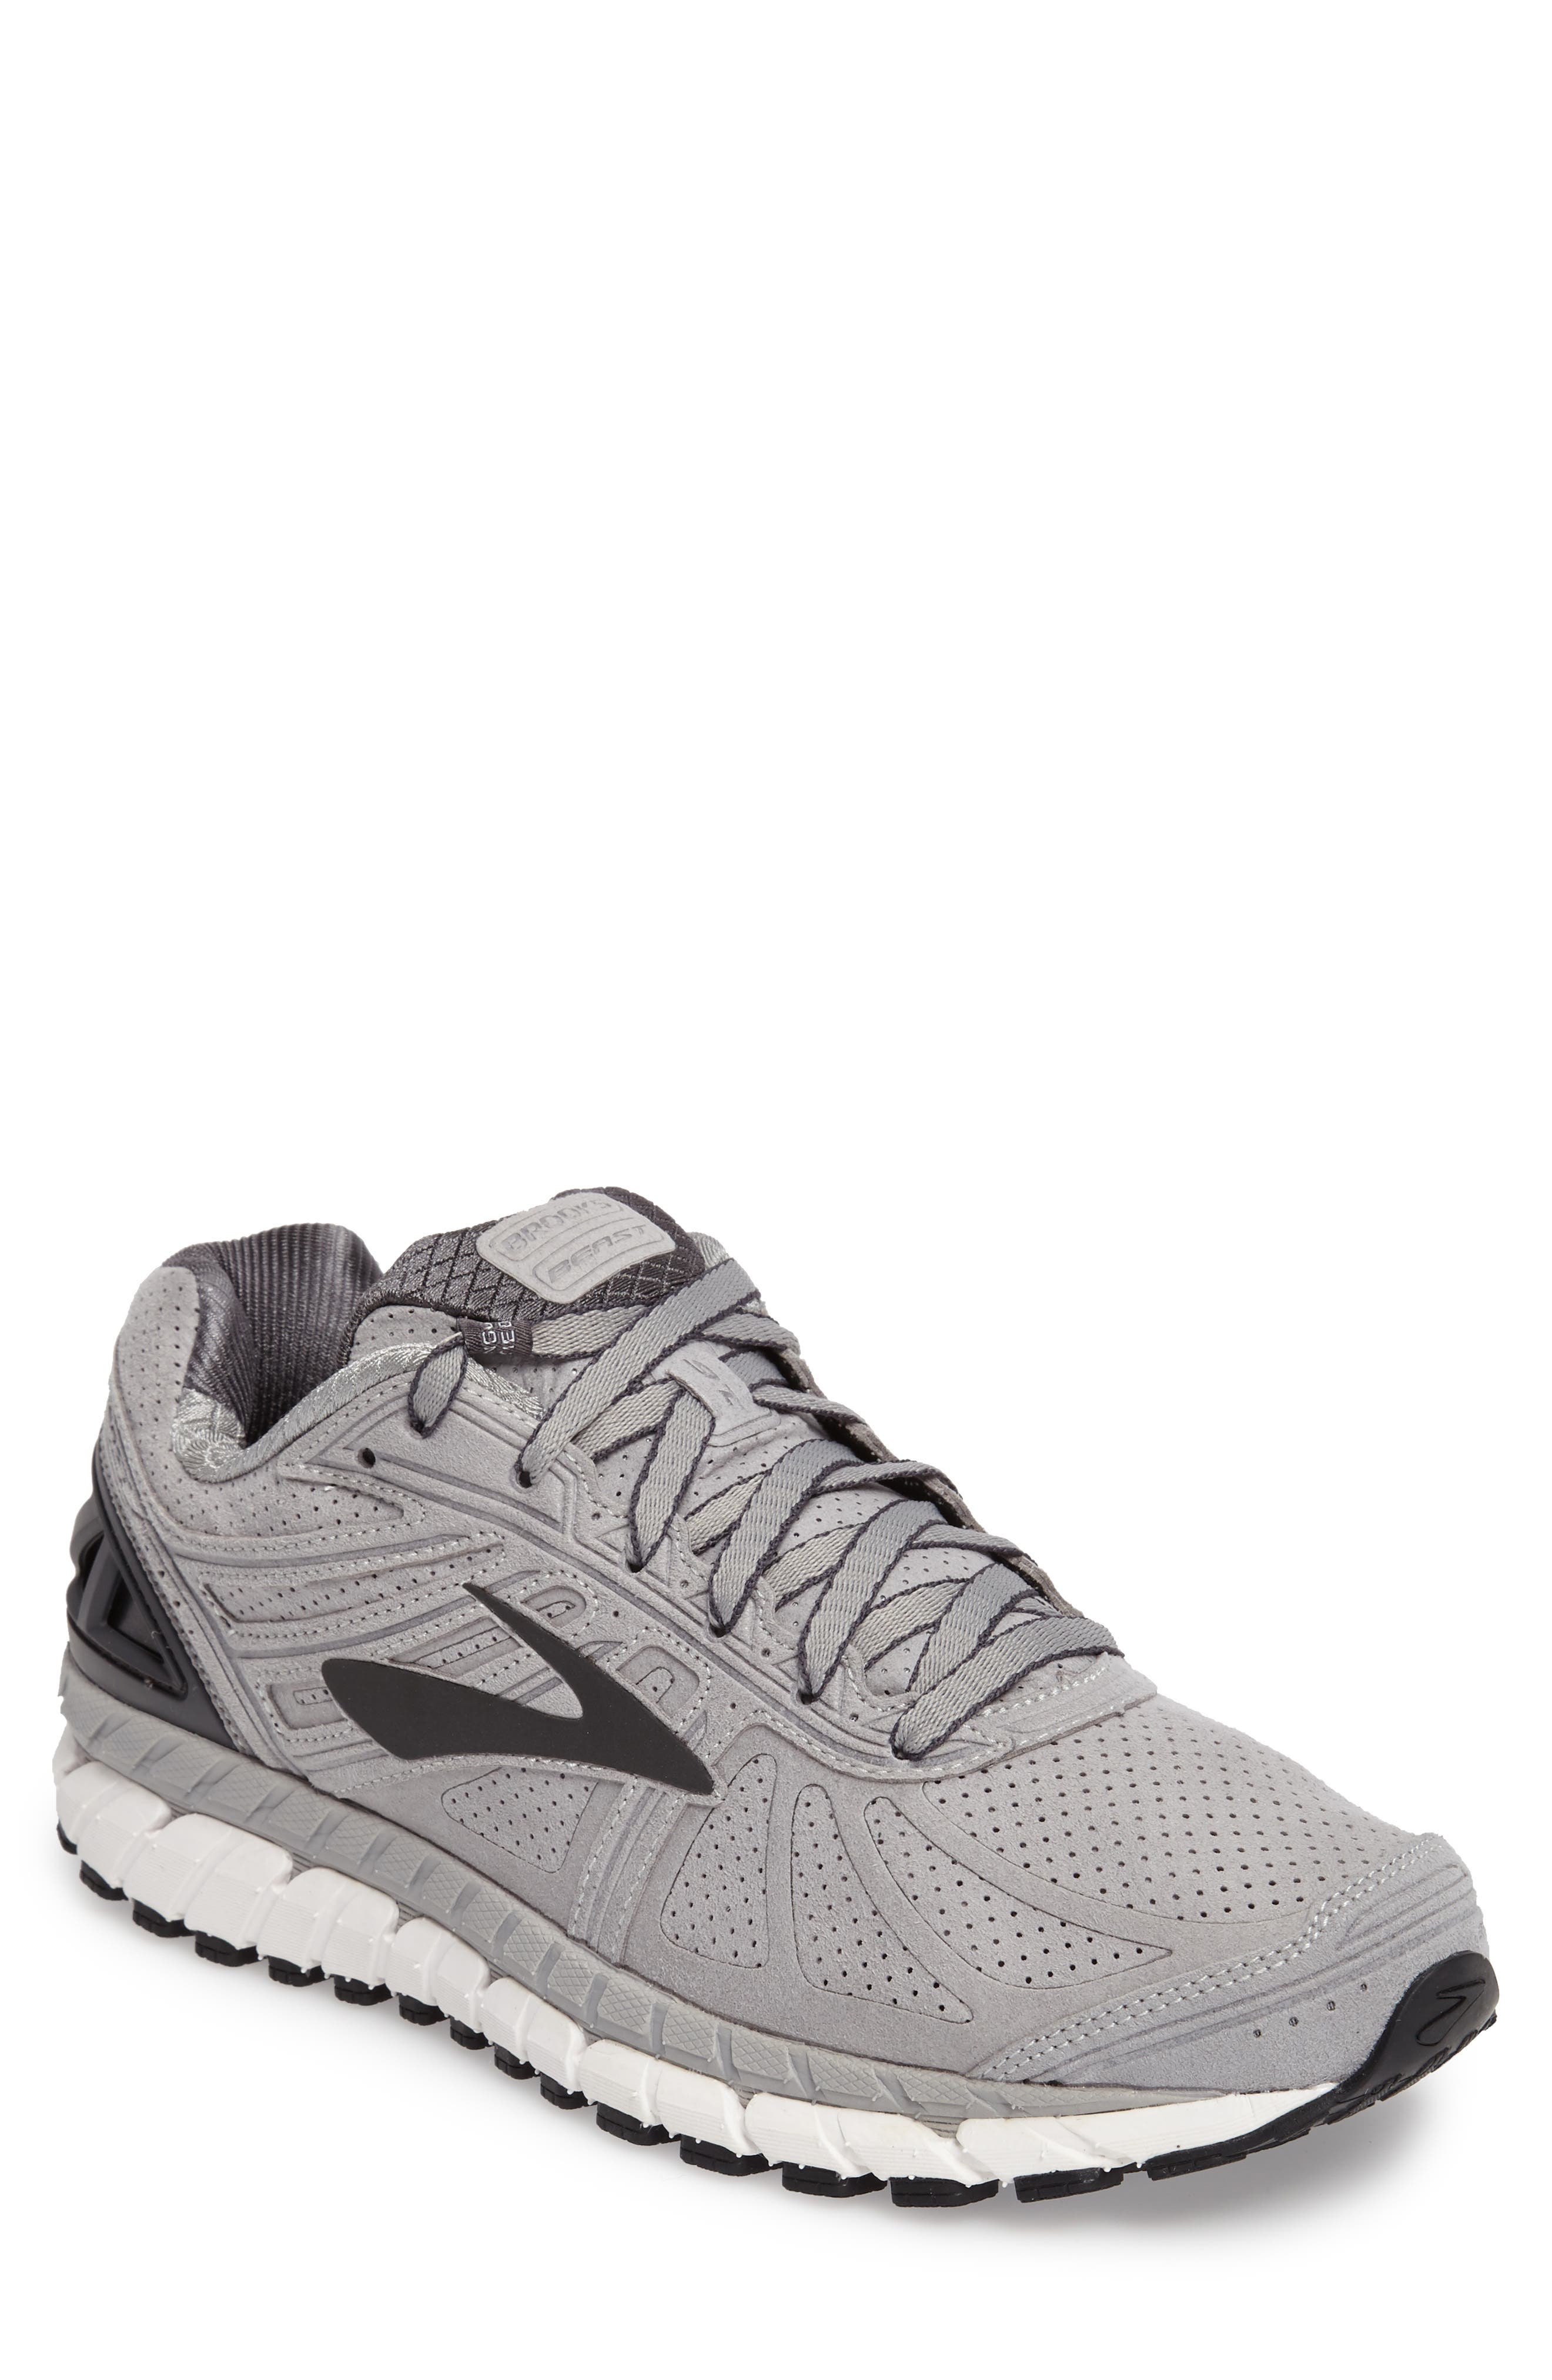 Beast 16 LE Running Shoe,                         Main,                         color, 025